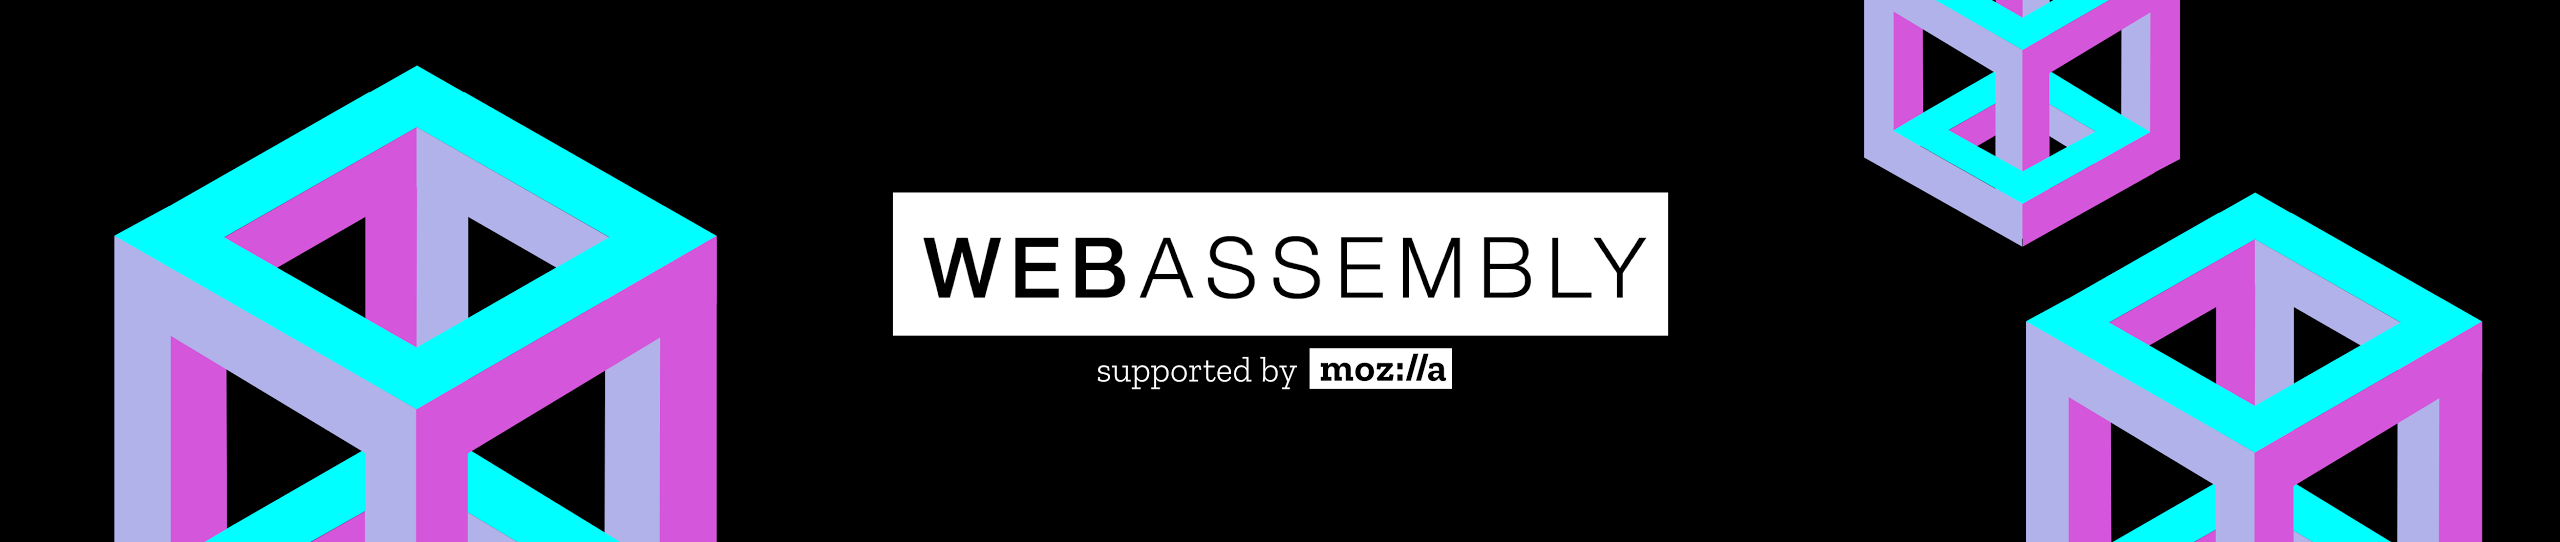 Why WebAssembly is a game changer for the web—and a source of pride for Mozilla and Firefox